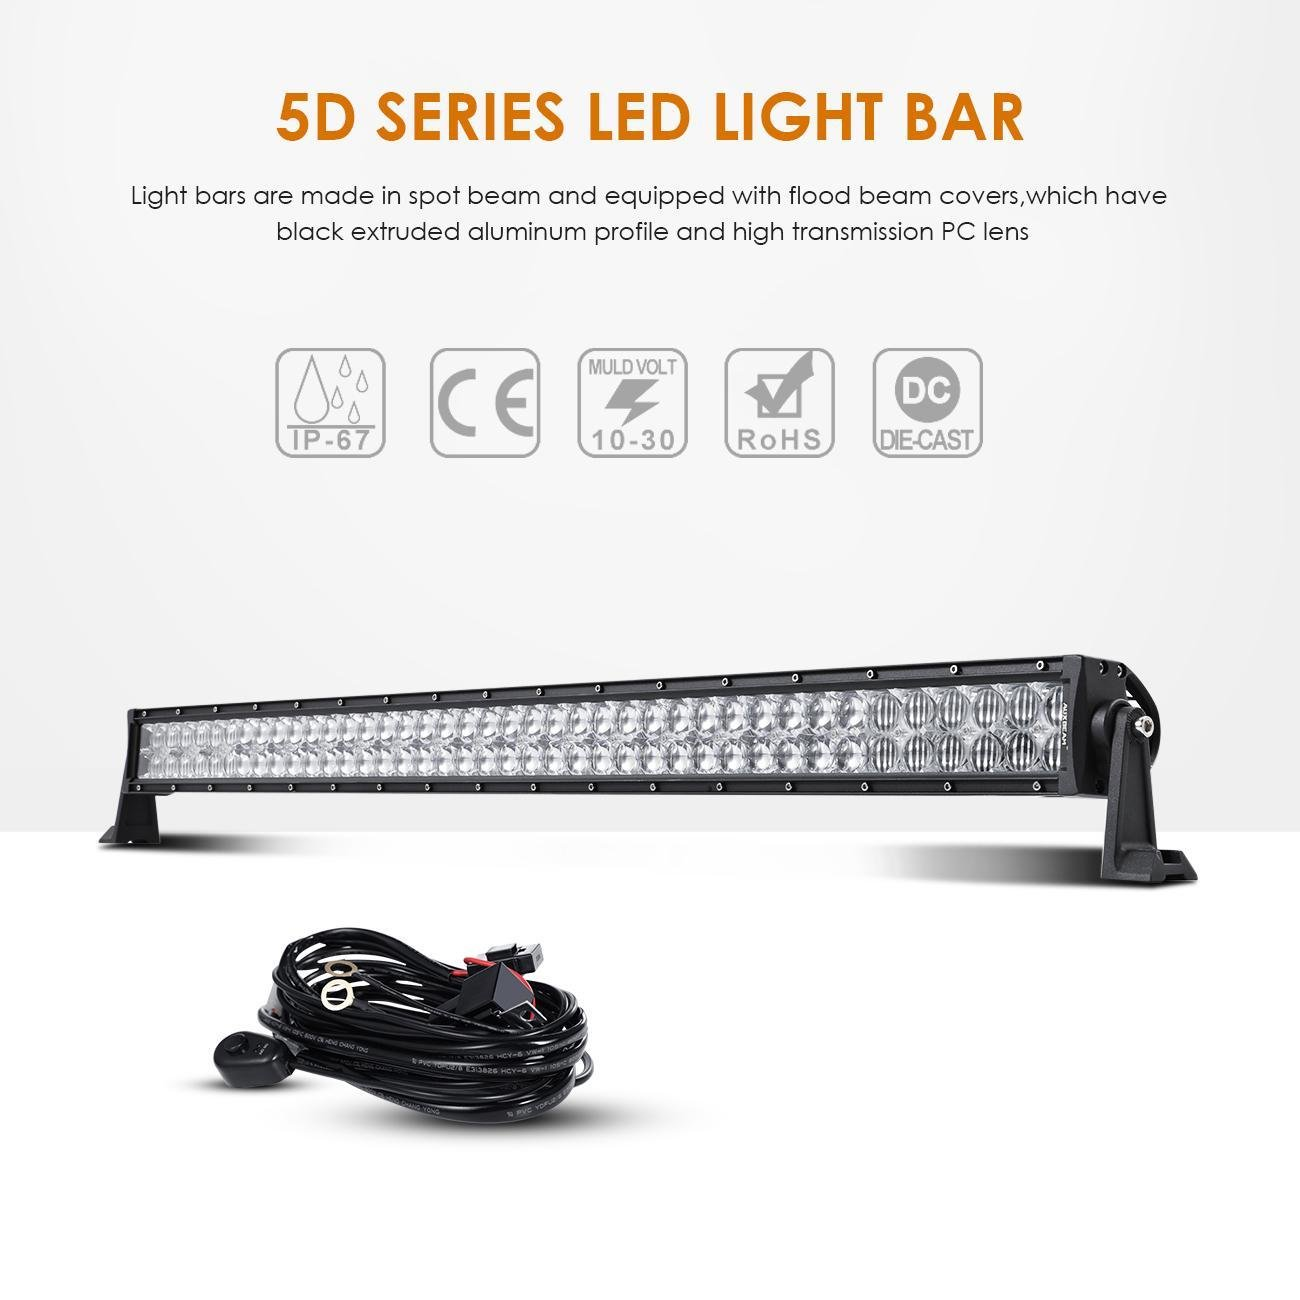 Auxbeam 42 Led Light Bar 240w Spot Flood Combo Off Road Cree Lighting Wiring Diagram Lights Driving Work 5d Lens Harness Car Suv Utv Atv Pickup